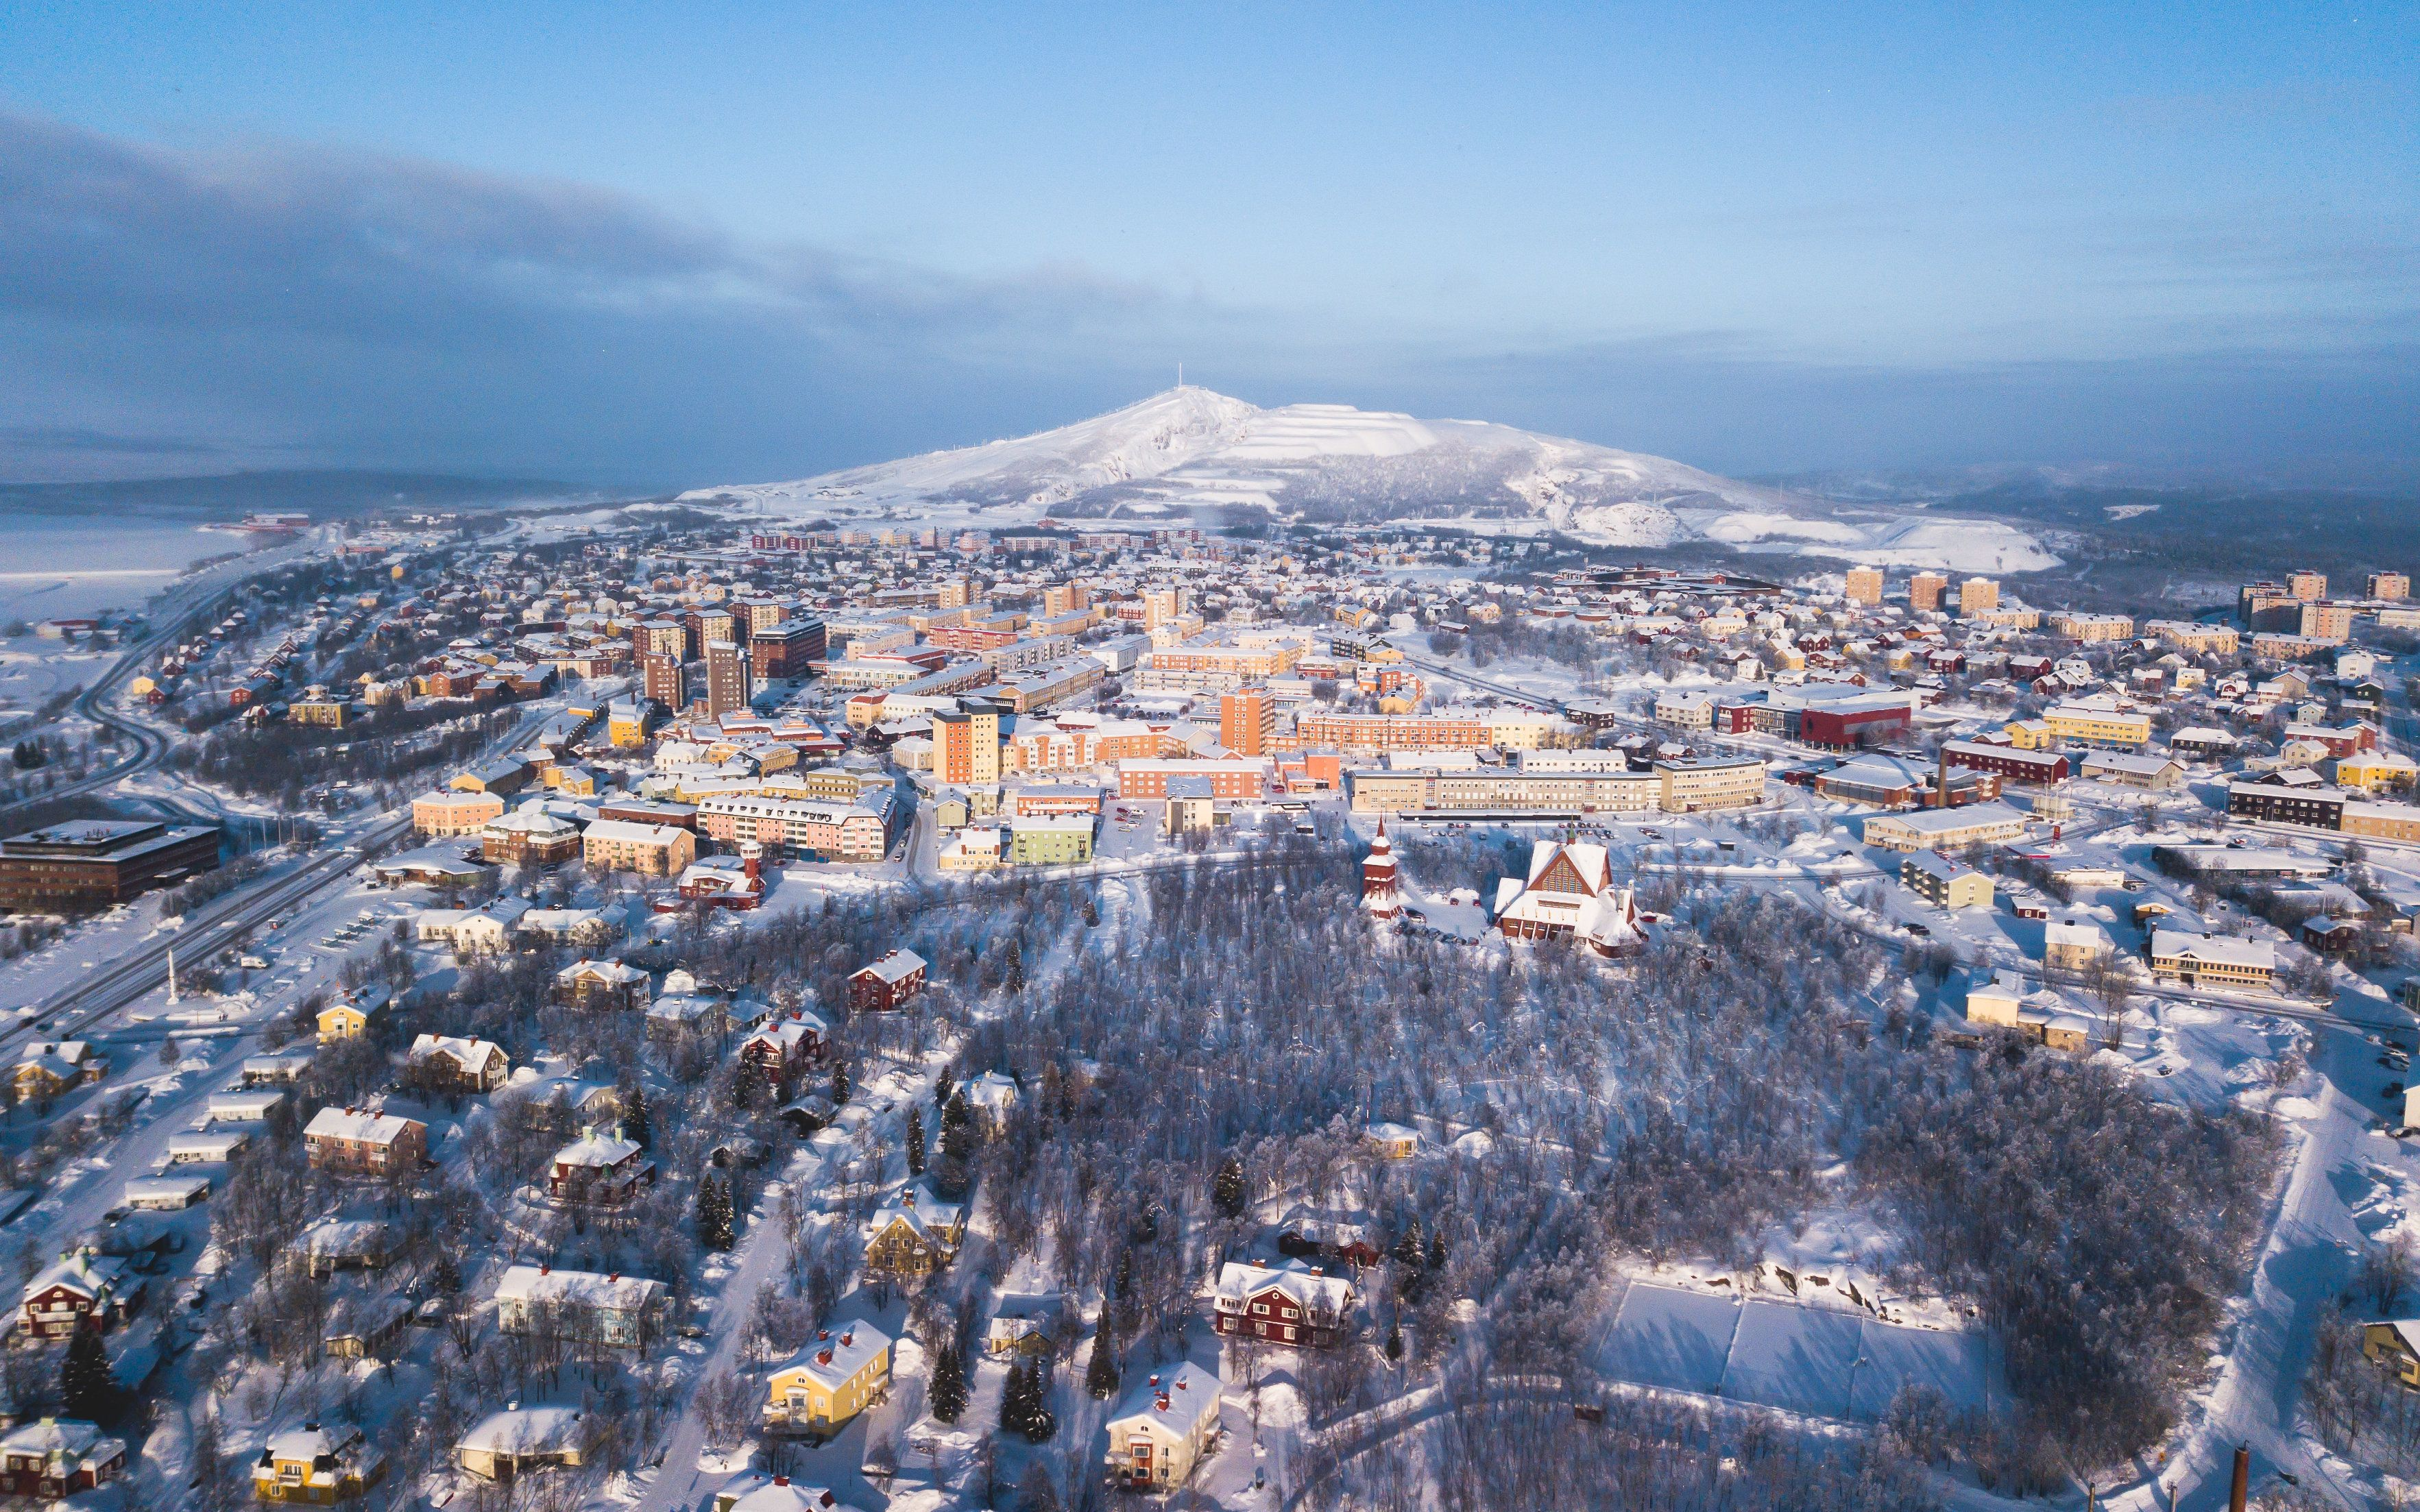 Kiruna, in northern Sweden, is being moved because it's threatened by iron ore mining deep beneath the